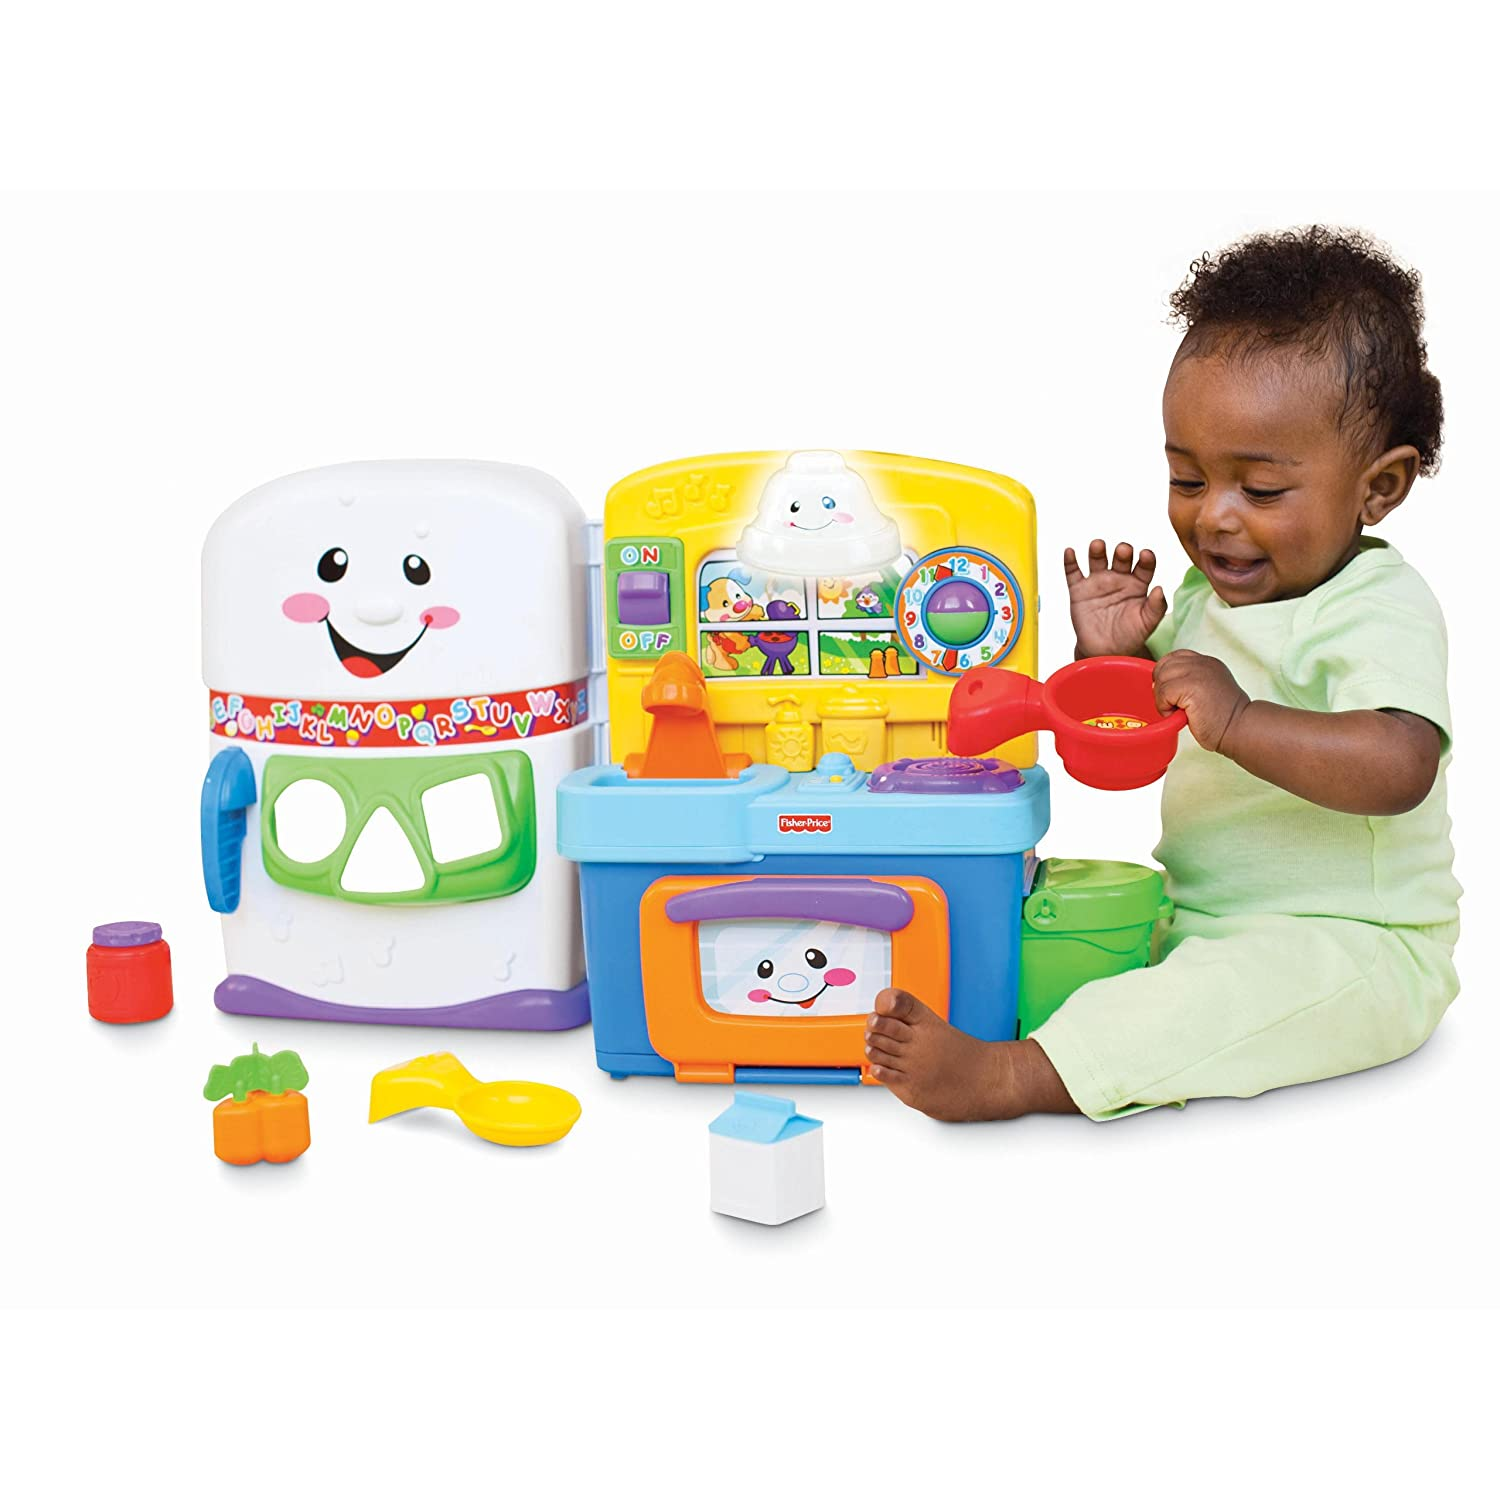 Popular toys for 1 year olds